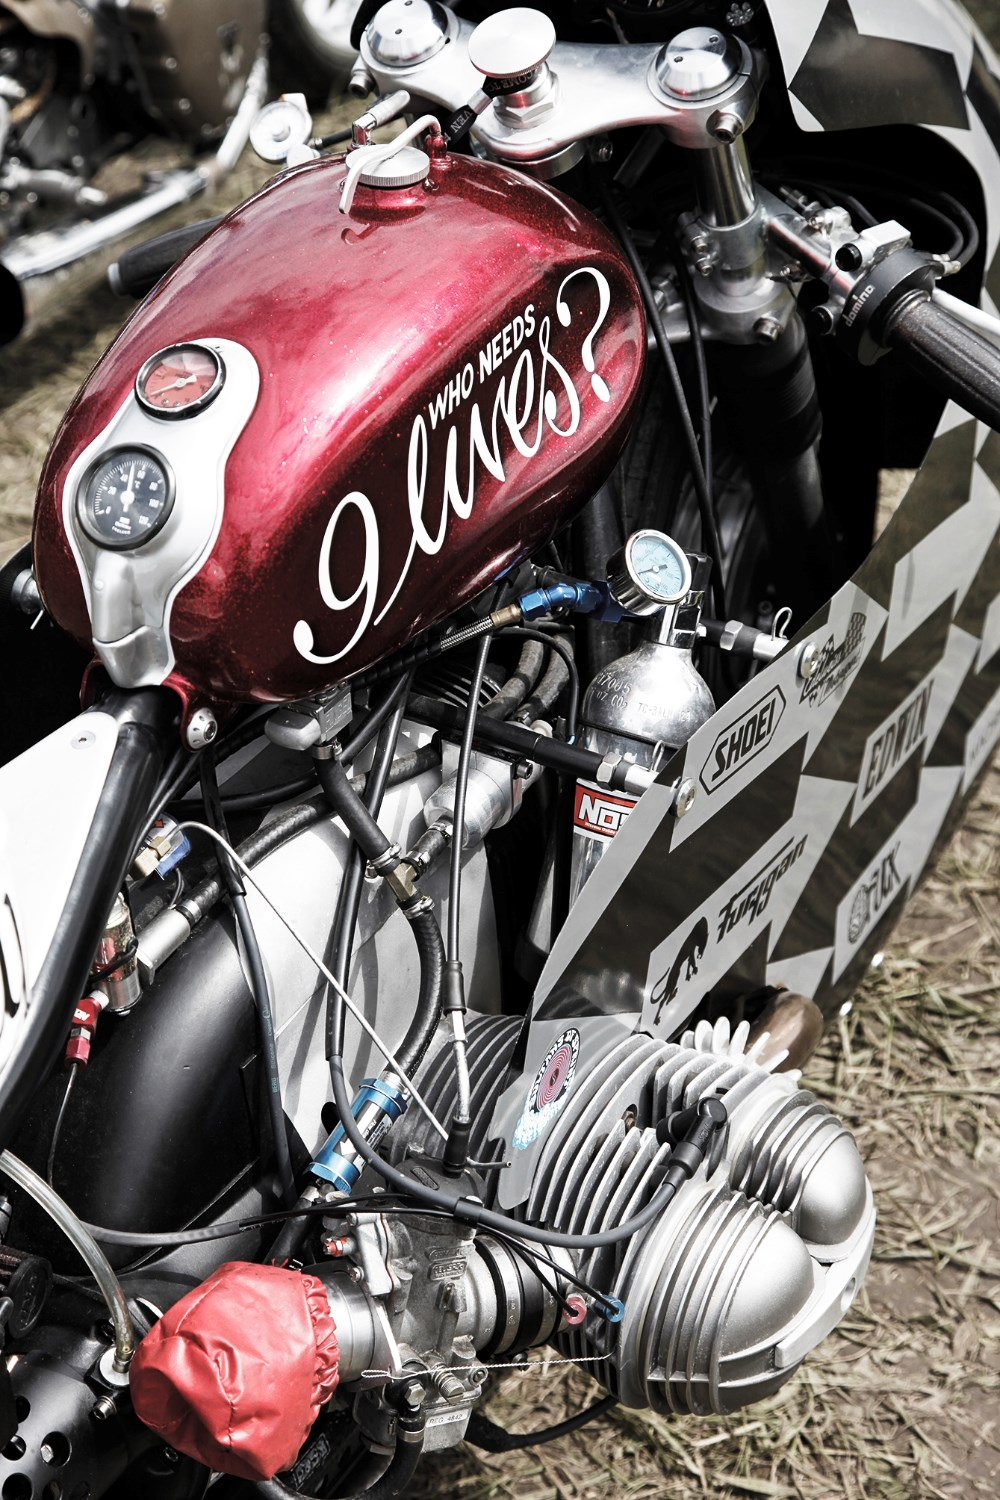 Who needs nine lives?  If you're running on nitrous oxide, most riders we imagine.